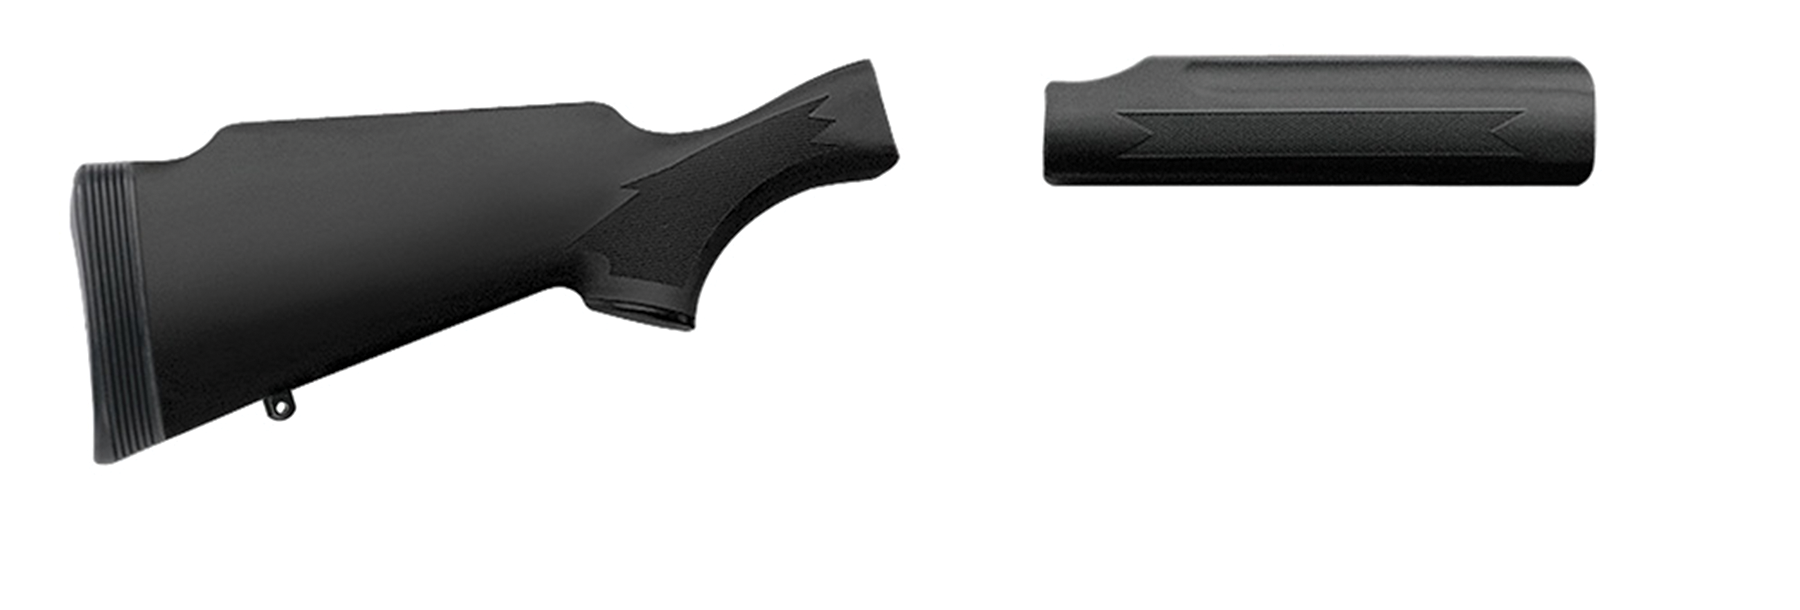 Stocks And Forends Remington870partsdiagram The Butt Plate Rests Against Shooters Remington 19487 870 12ga Stock Forend Monte Carlo Fiberglass Reinforced Syn Black